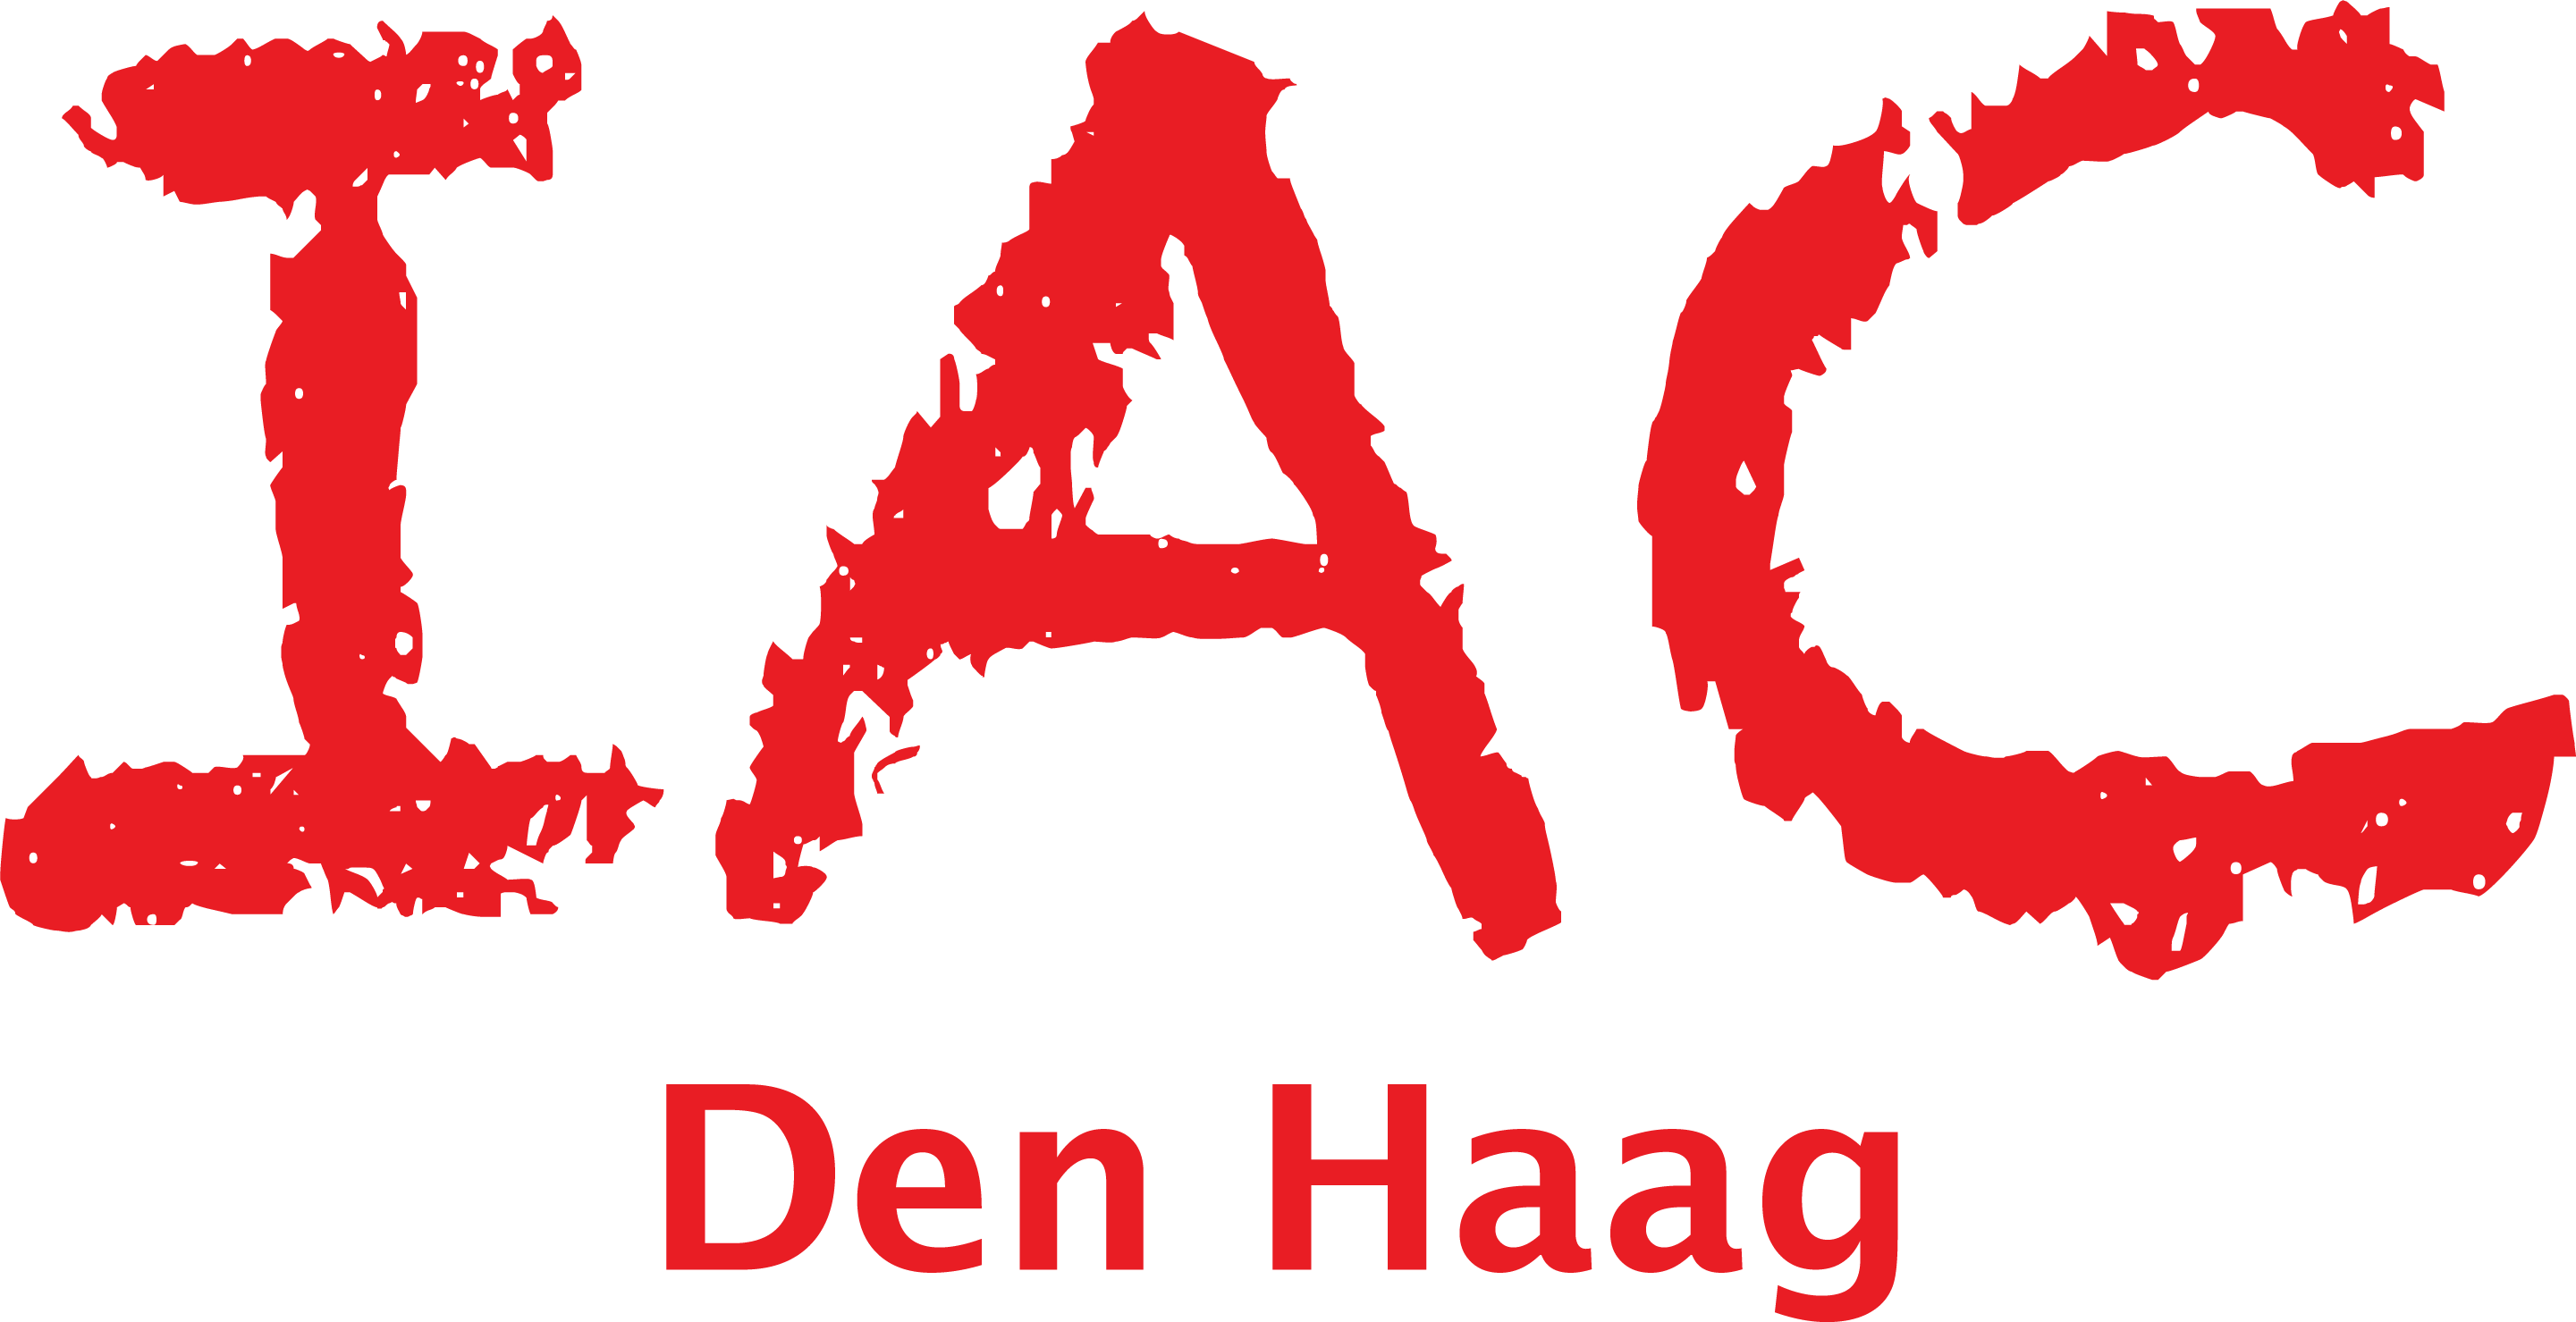 IAC The Hague